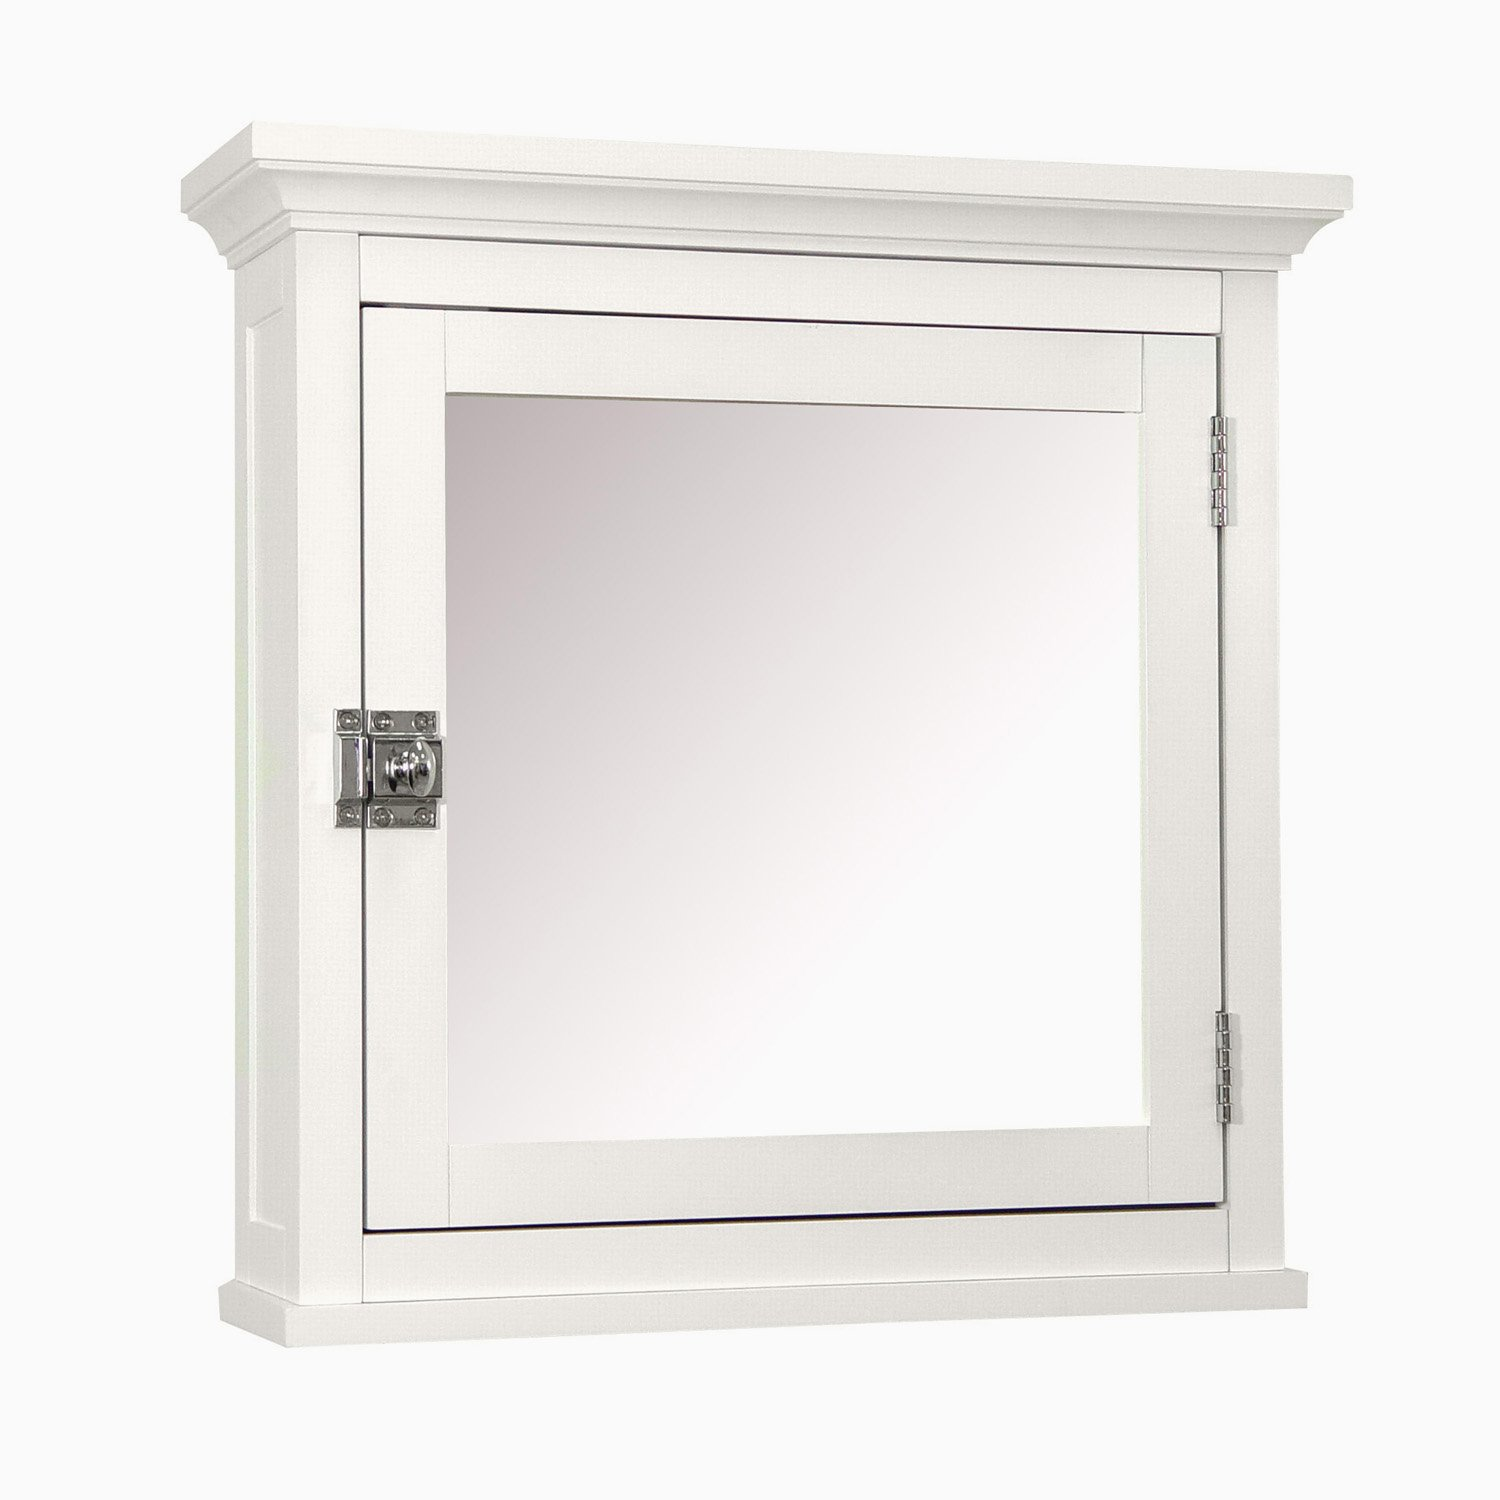 Elegant Home Fashions Madison Collection Mirrored Medicine Cabinet, White by Elegant Home Fashions